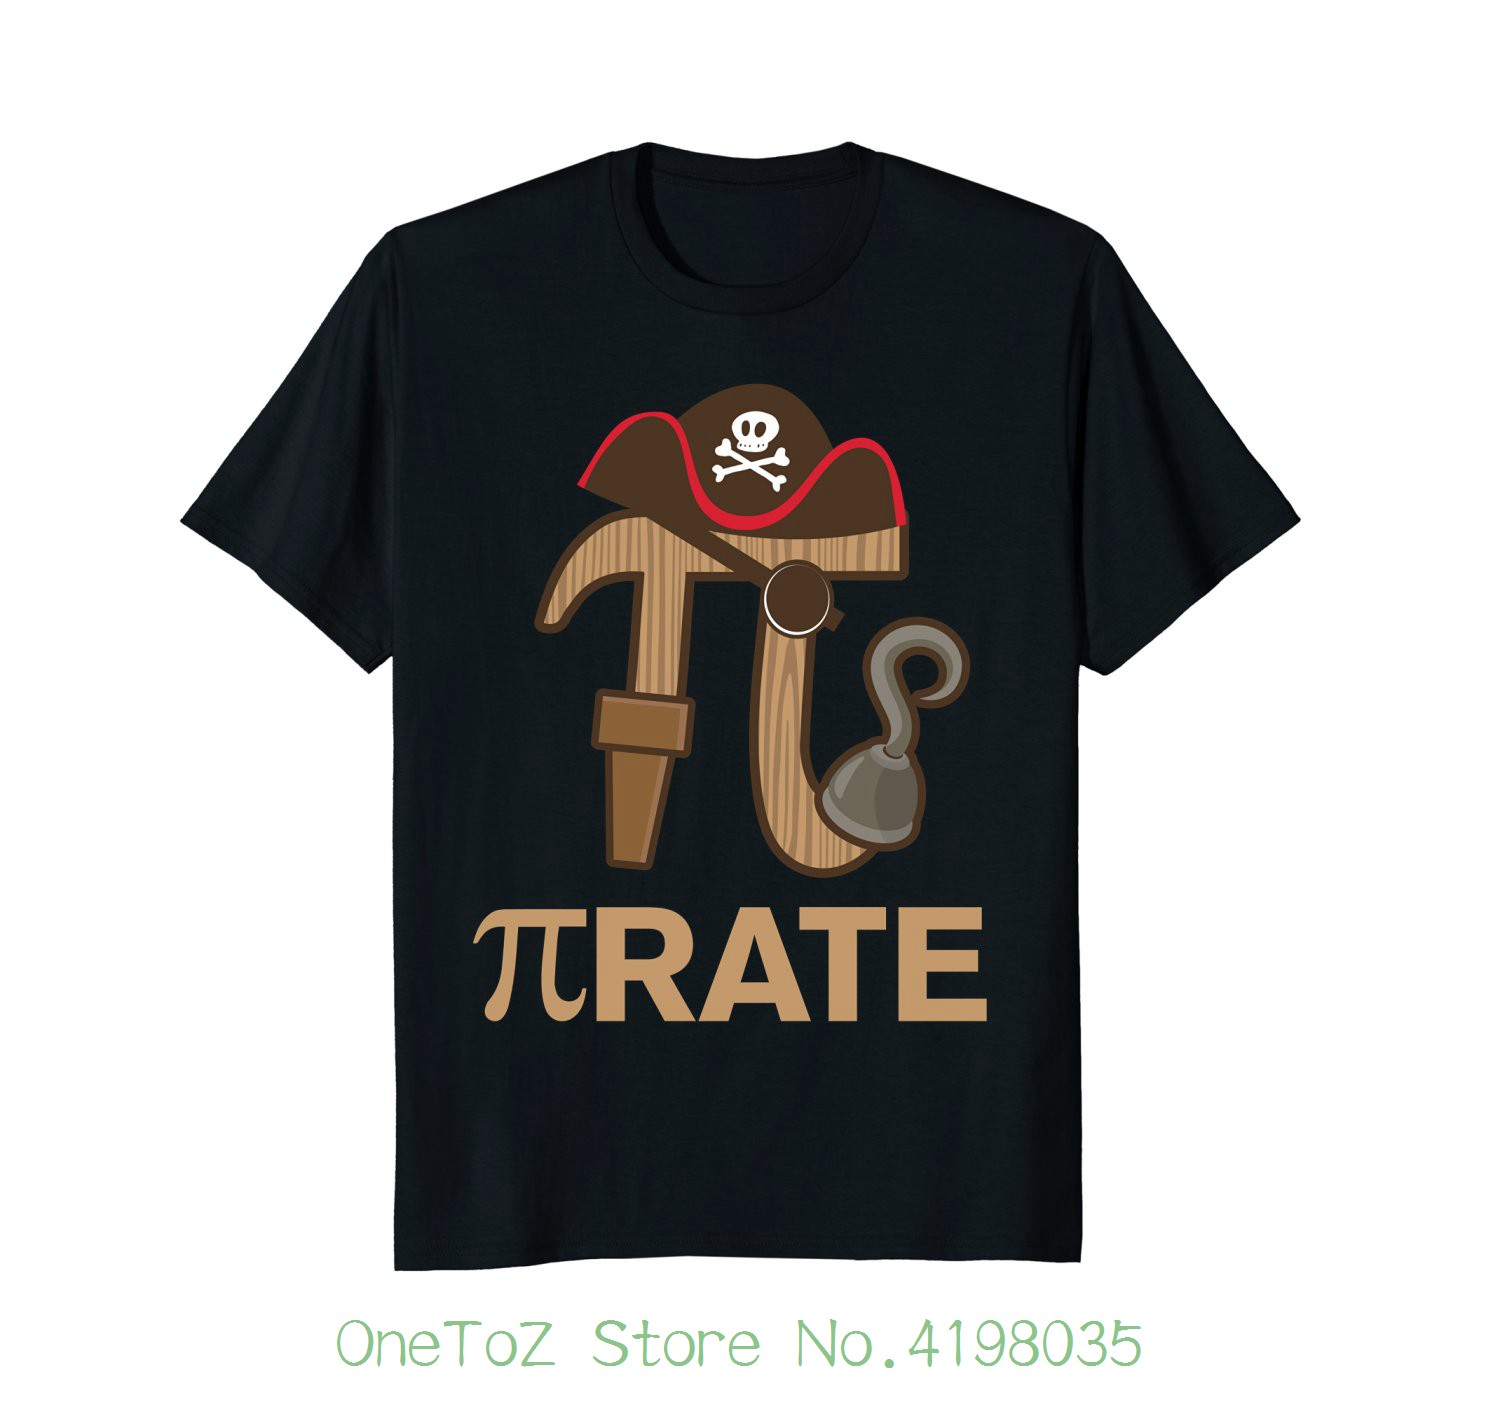 Pirate - Funny Math Geek 3.14 Hat Hook Pi Day Pun T-shirt 100% Cotton Letter Printed T-shirts